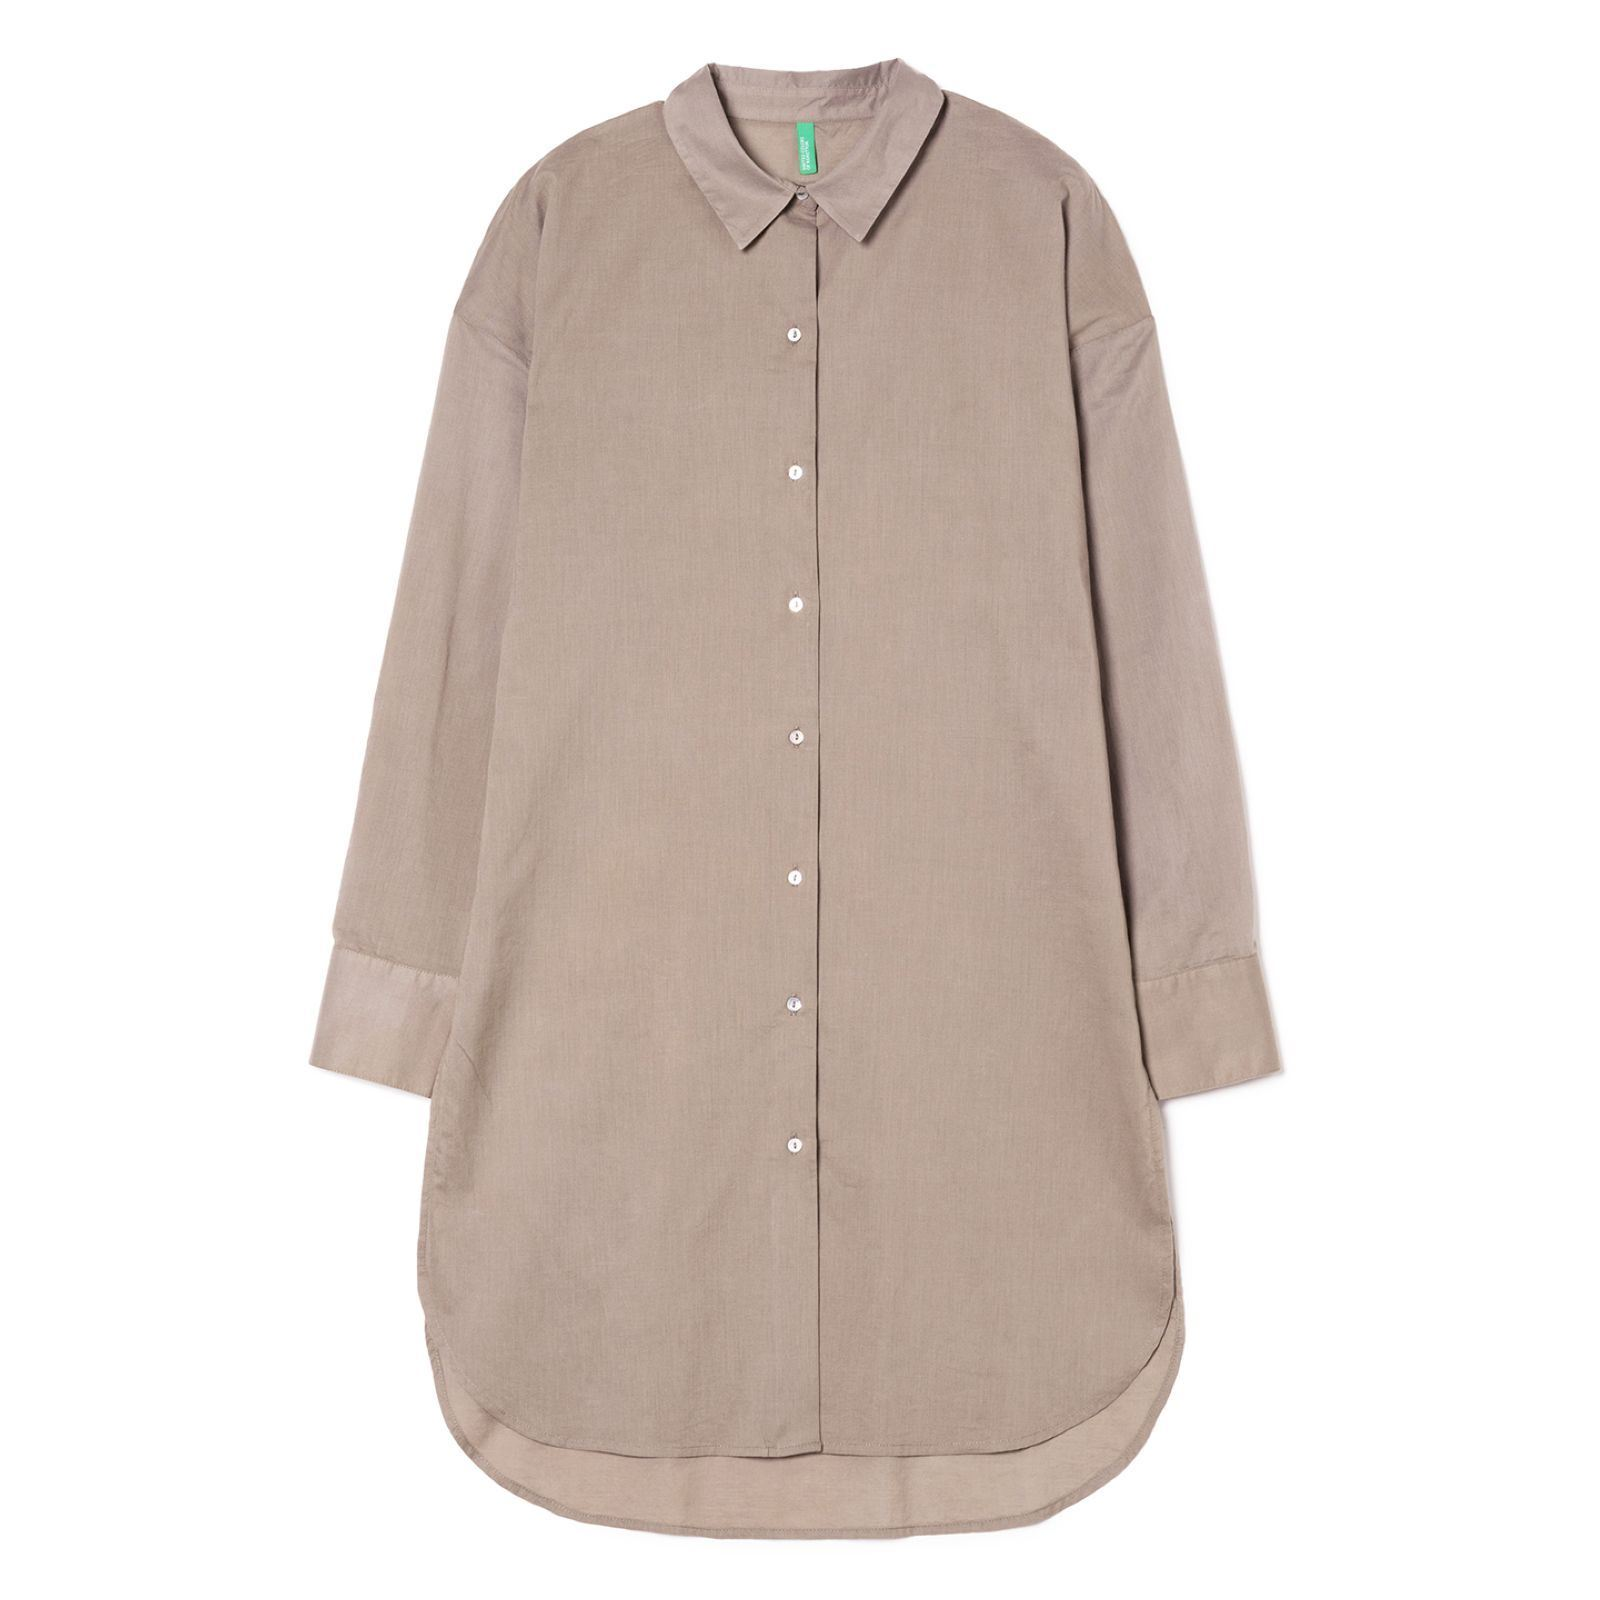 Benetton Chemise Manches Brandalley Longues Taupe rrq71 a6db4fbad8b